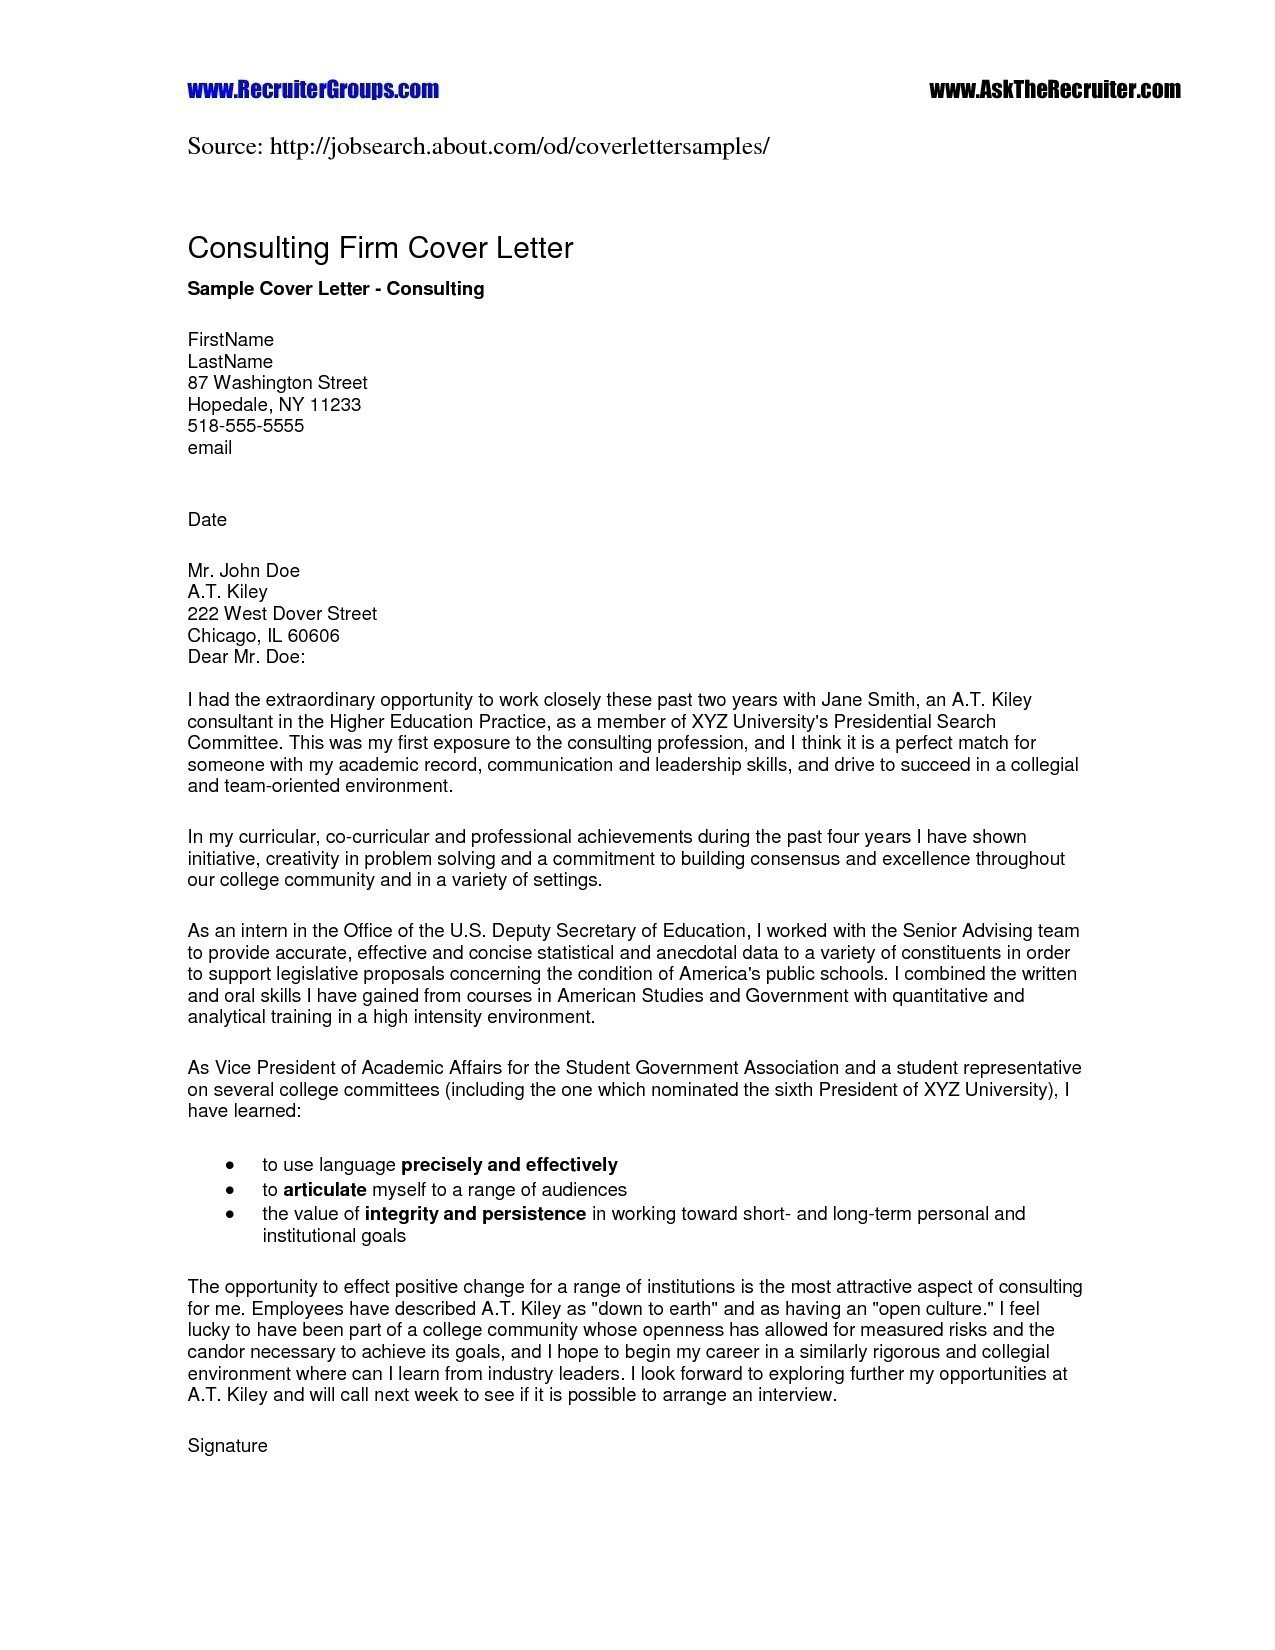 chargeback rebuttal letter template Collection-Pre Approval Letter Template Best How to Write Job Fer Letter Fresh Job Fer Letter Sample Best Job apextechnews 9-p